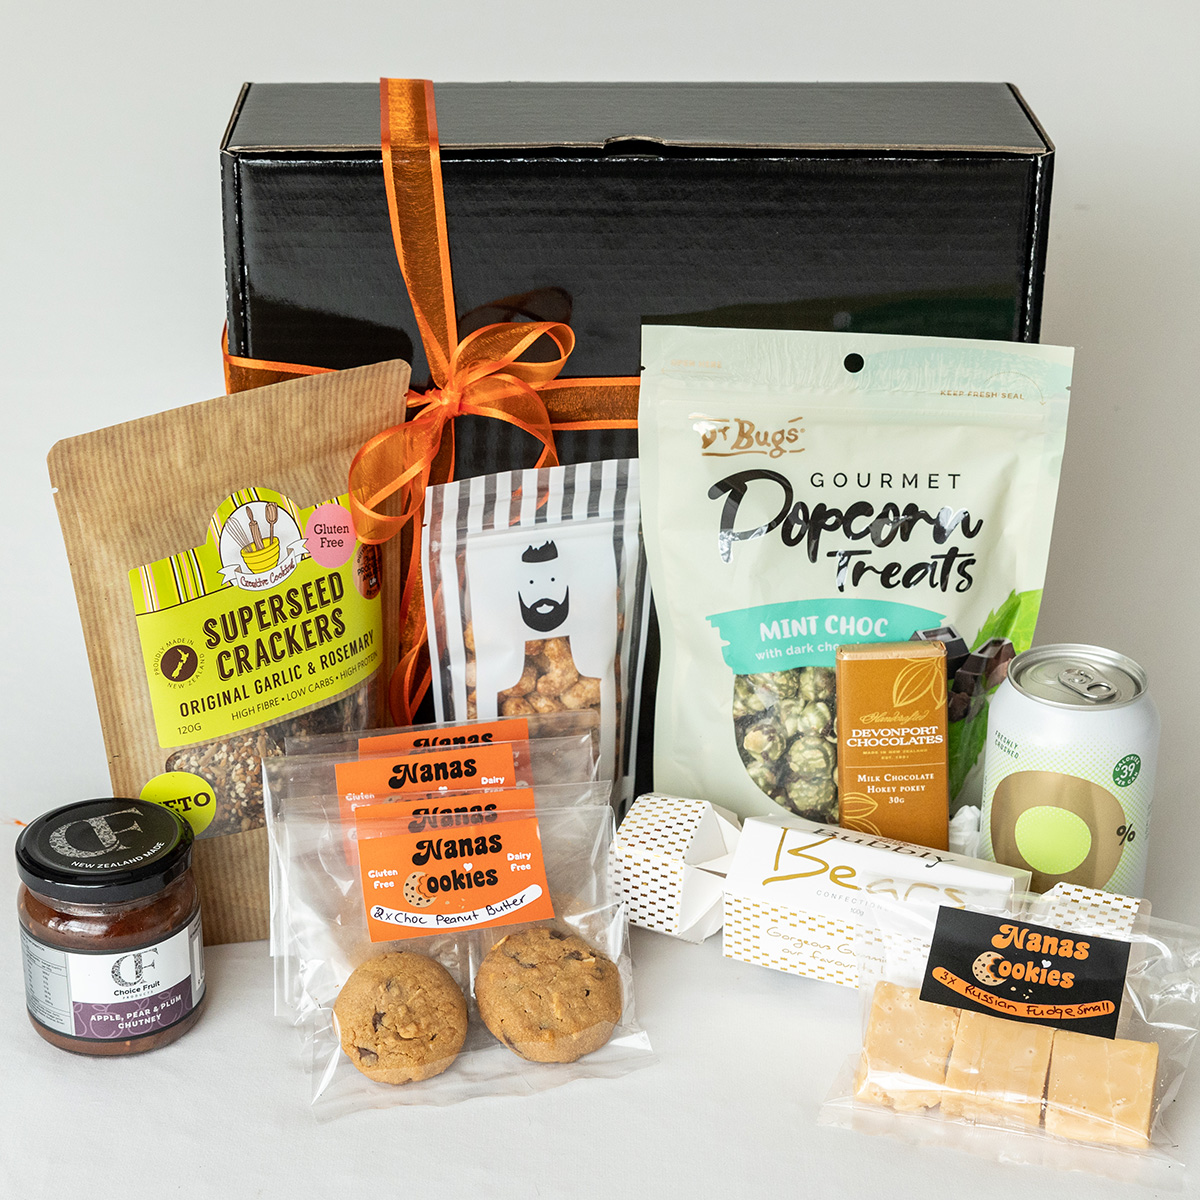 Nanas Cookies homemade cookies and gift baskets. Send cookies to friends, family, and colleagues or order cookies online for home delivery.